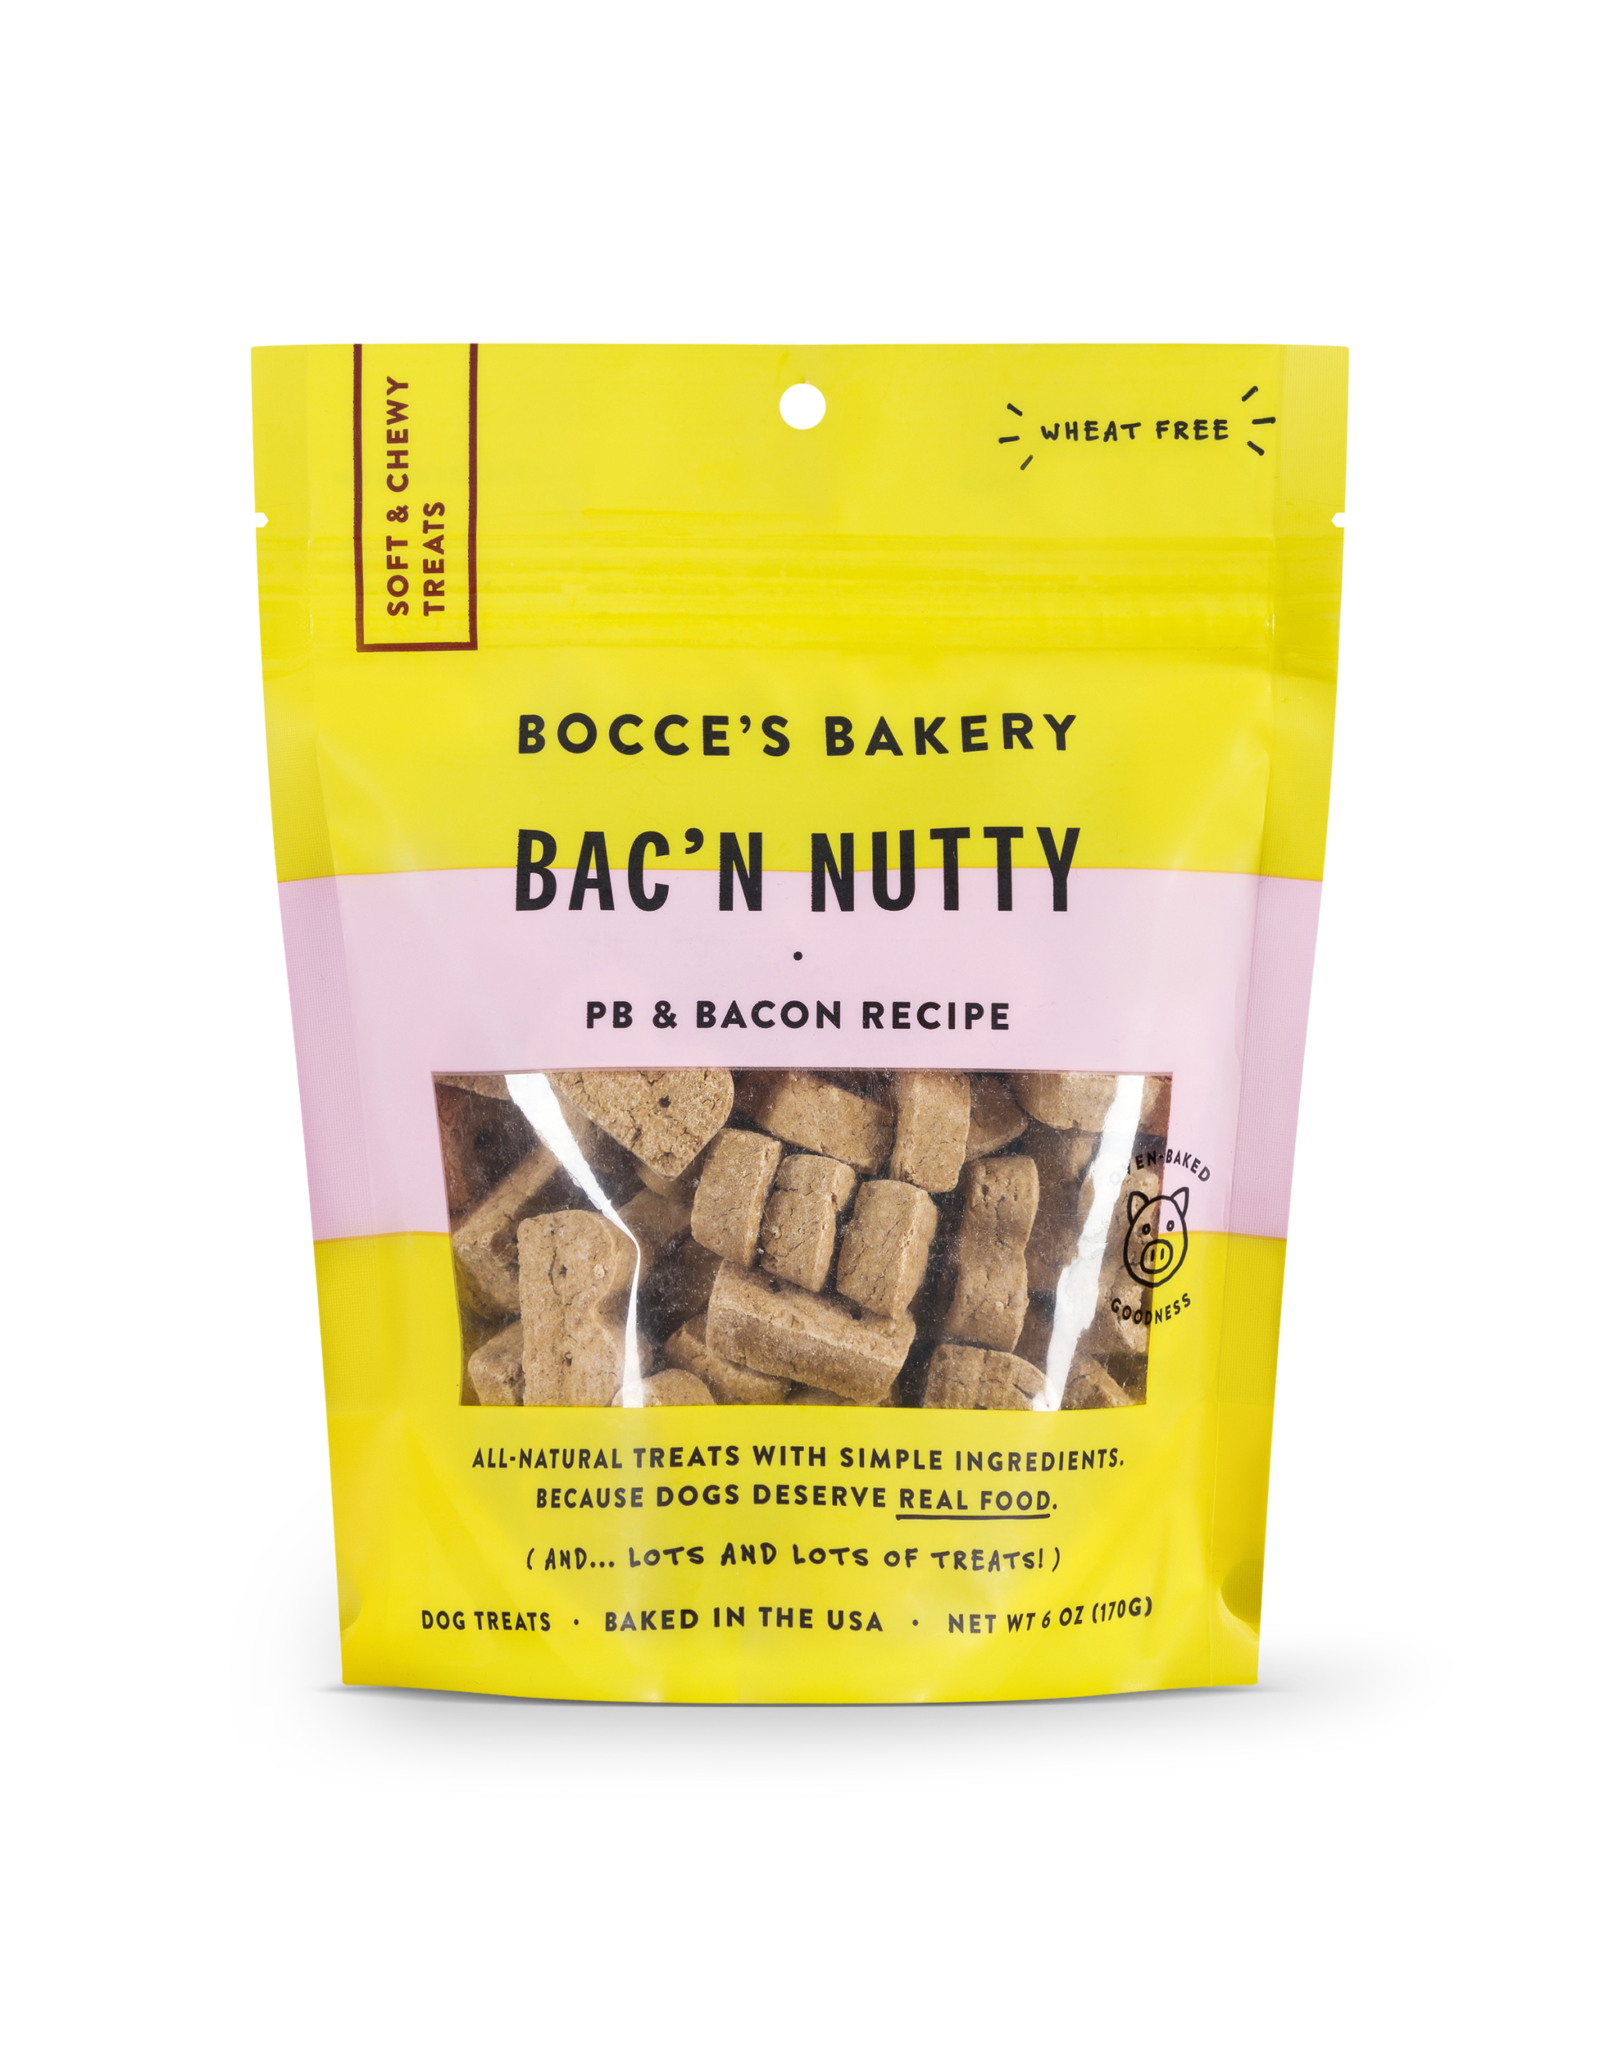 Bocce's Bakery Bocce's Bakery: Soft & Chewy Bac N' Nutty, 6 oz